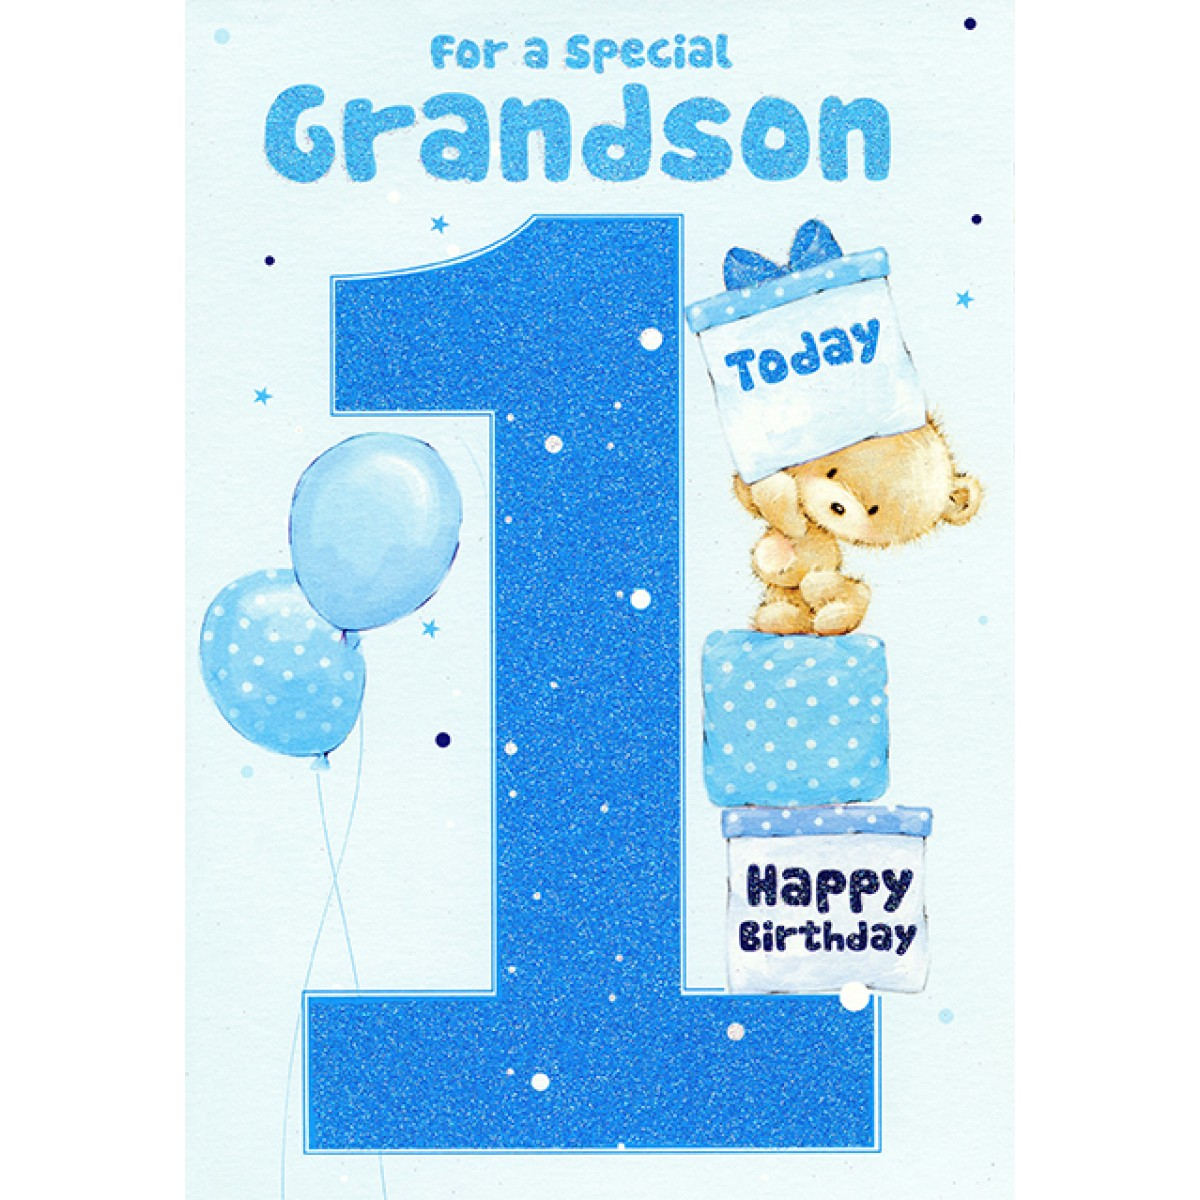 first birthday greeting card messages ; a2a107cb59dede1c189f6c6d546c0acf